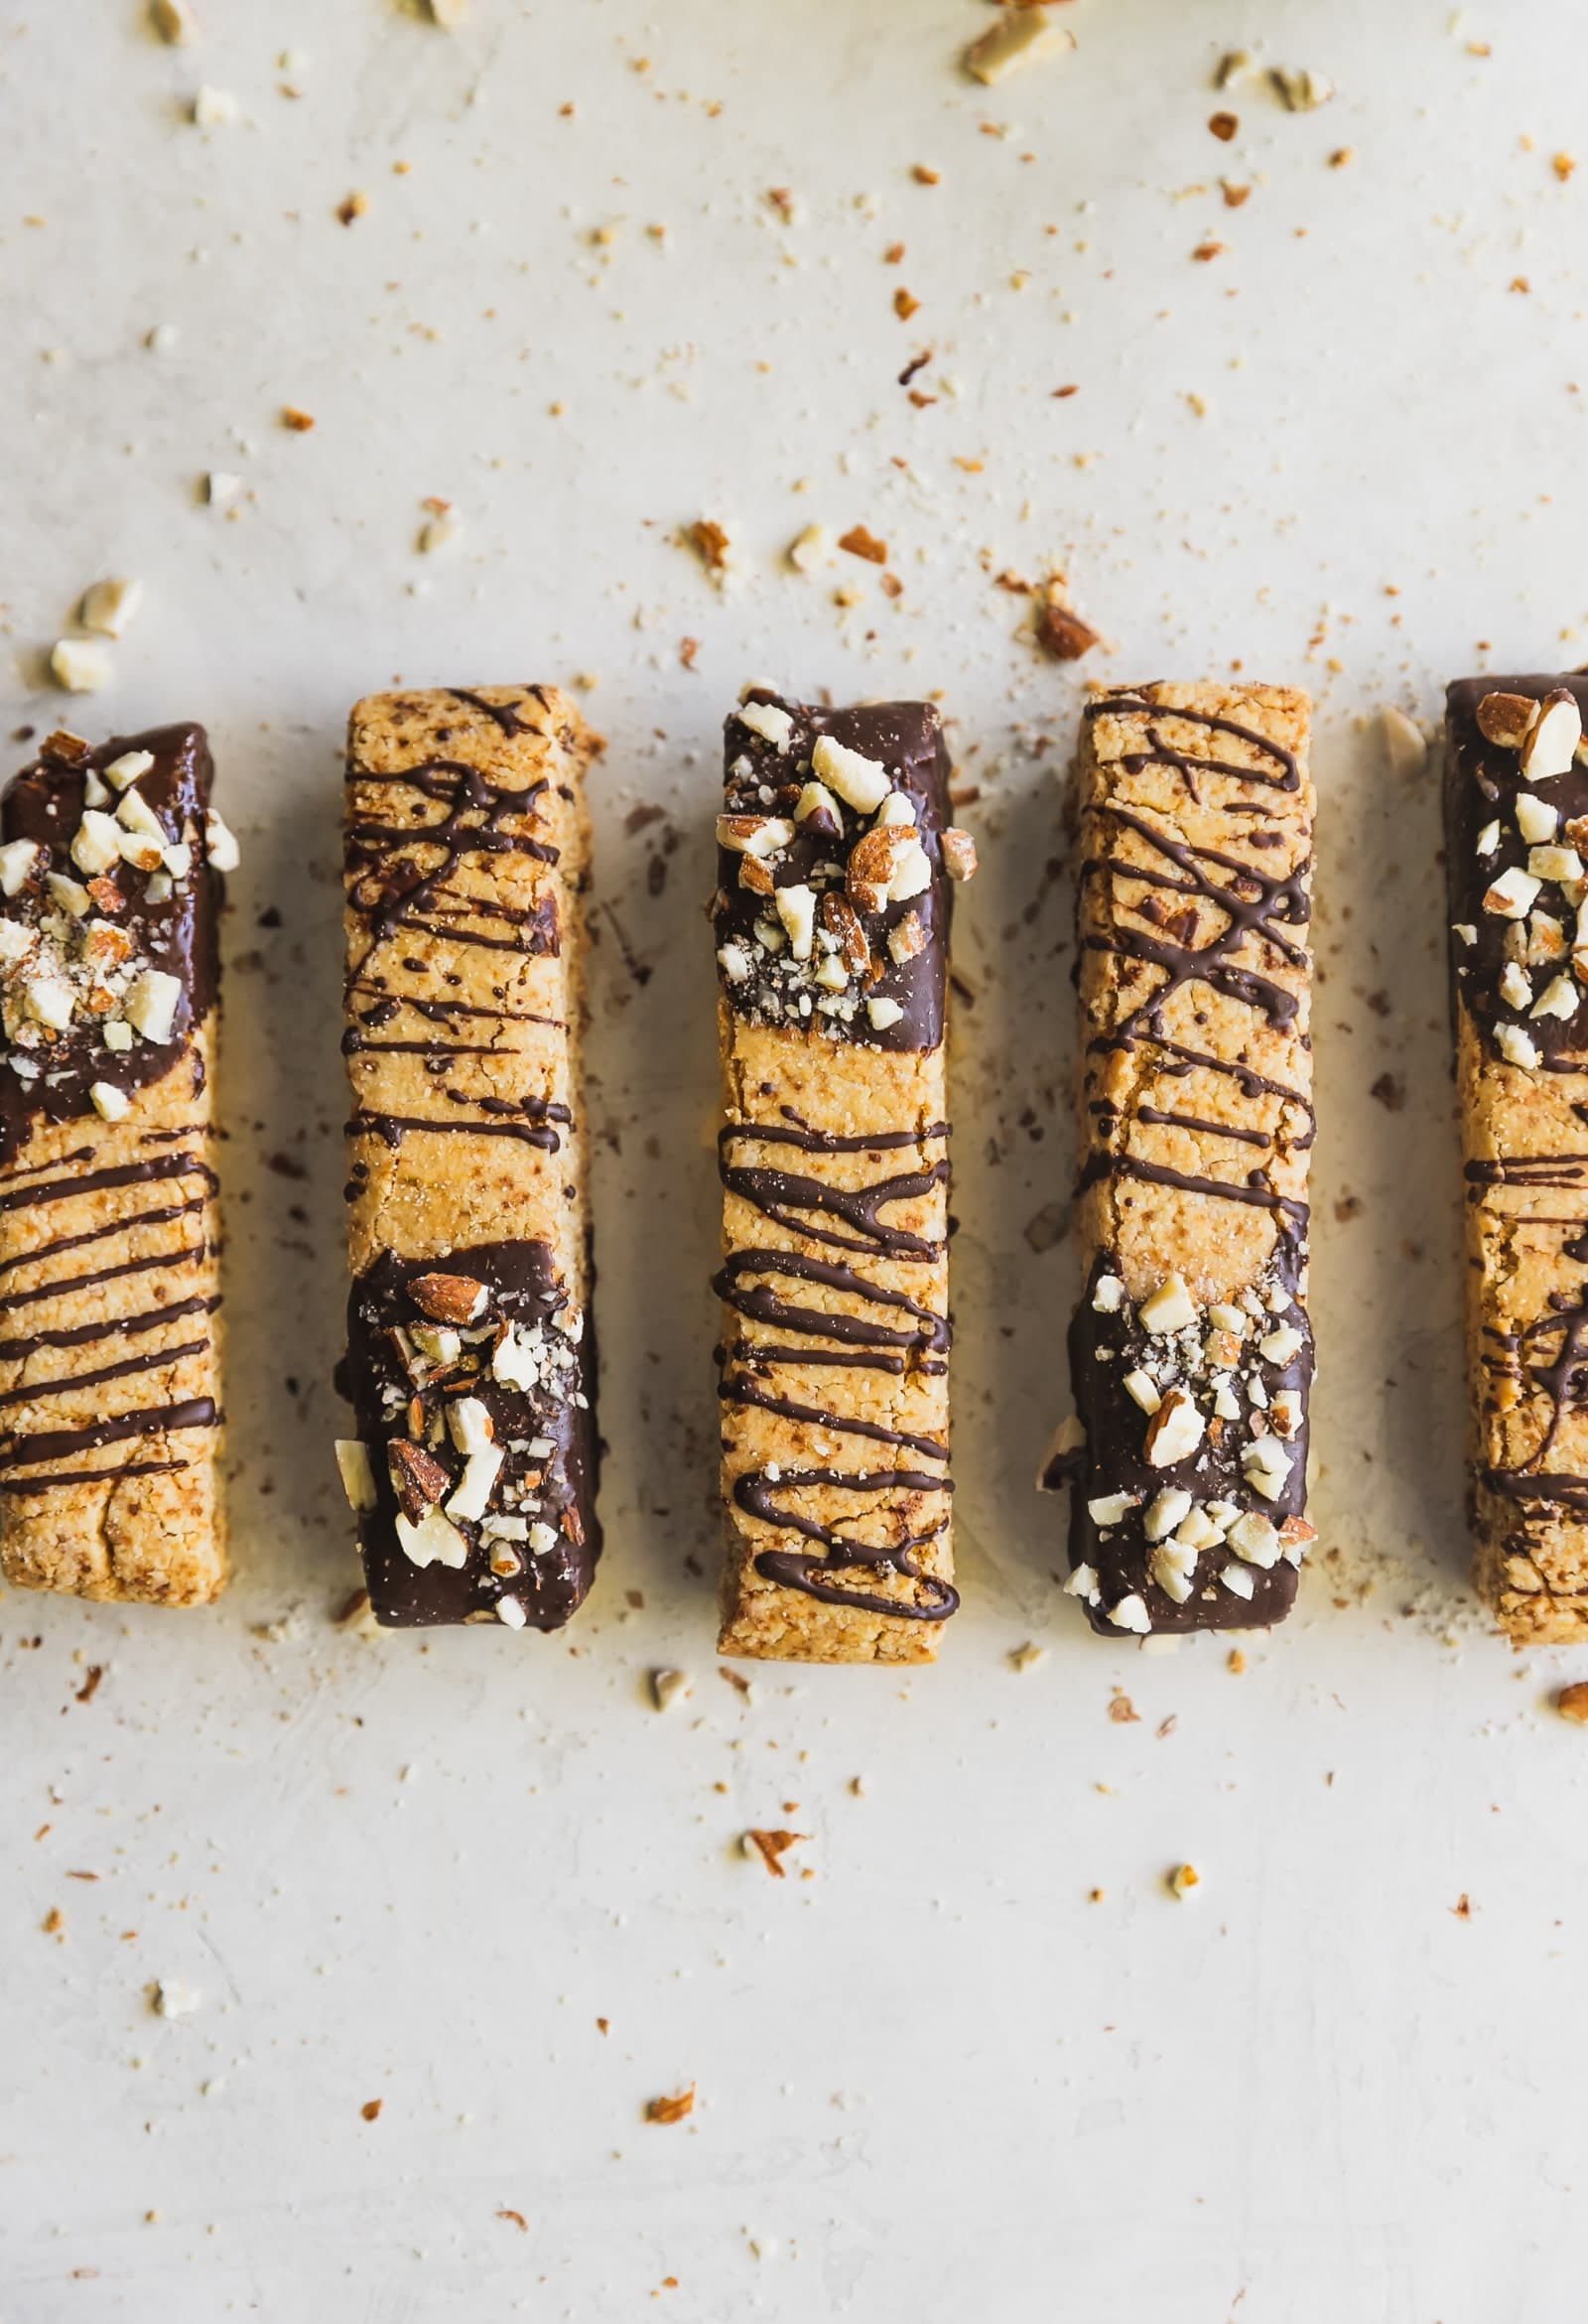 Dairy-free and grain-free almond biscotti dipped in melted dark chocolate and topped with chopped almonds. No better snack for any day of the week!